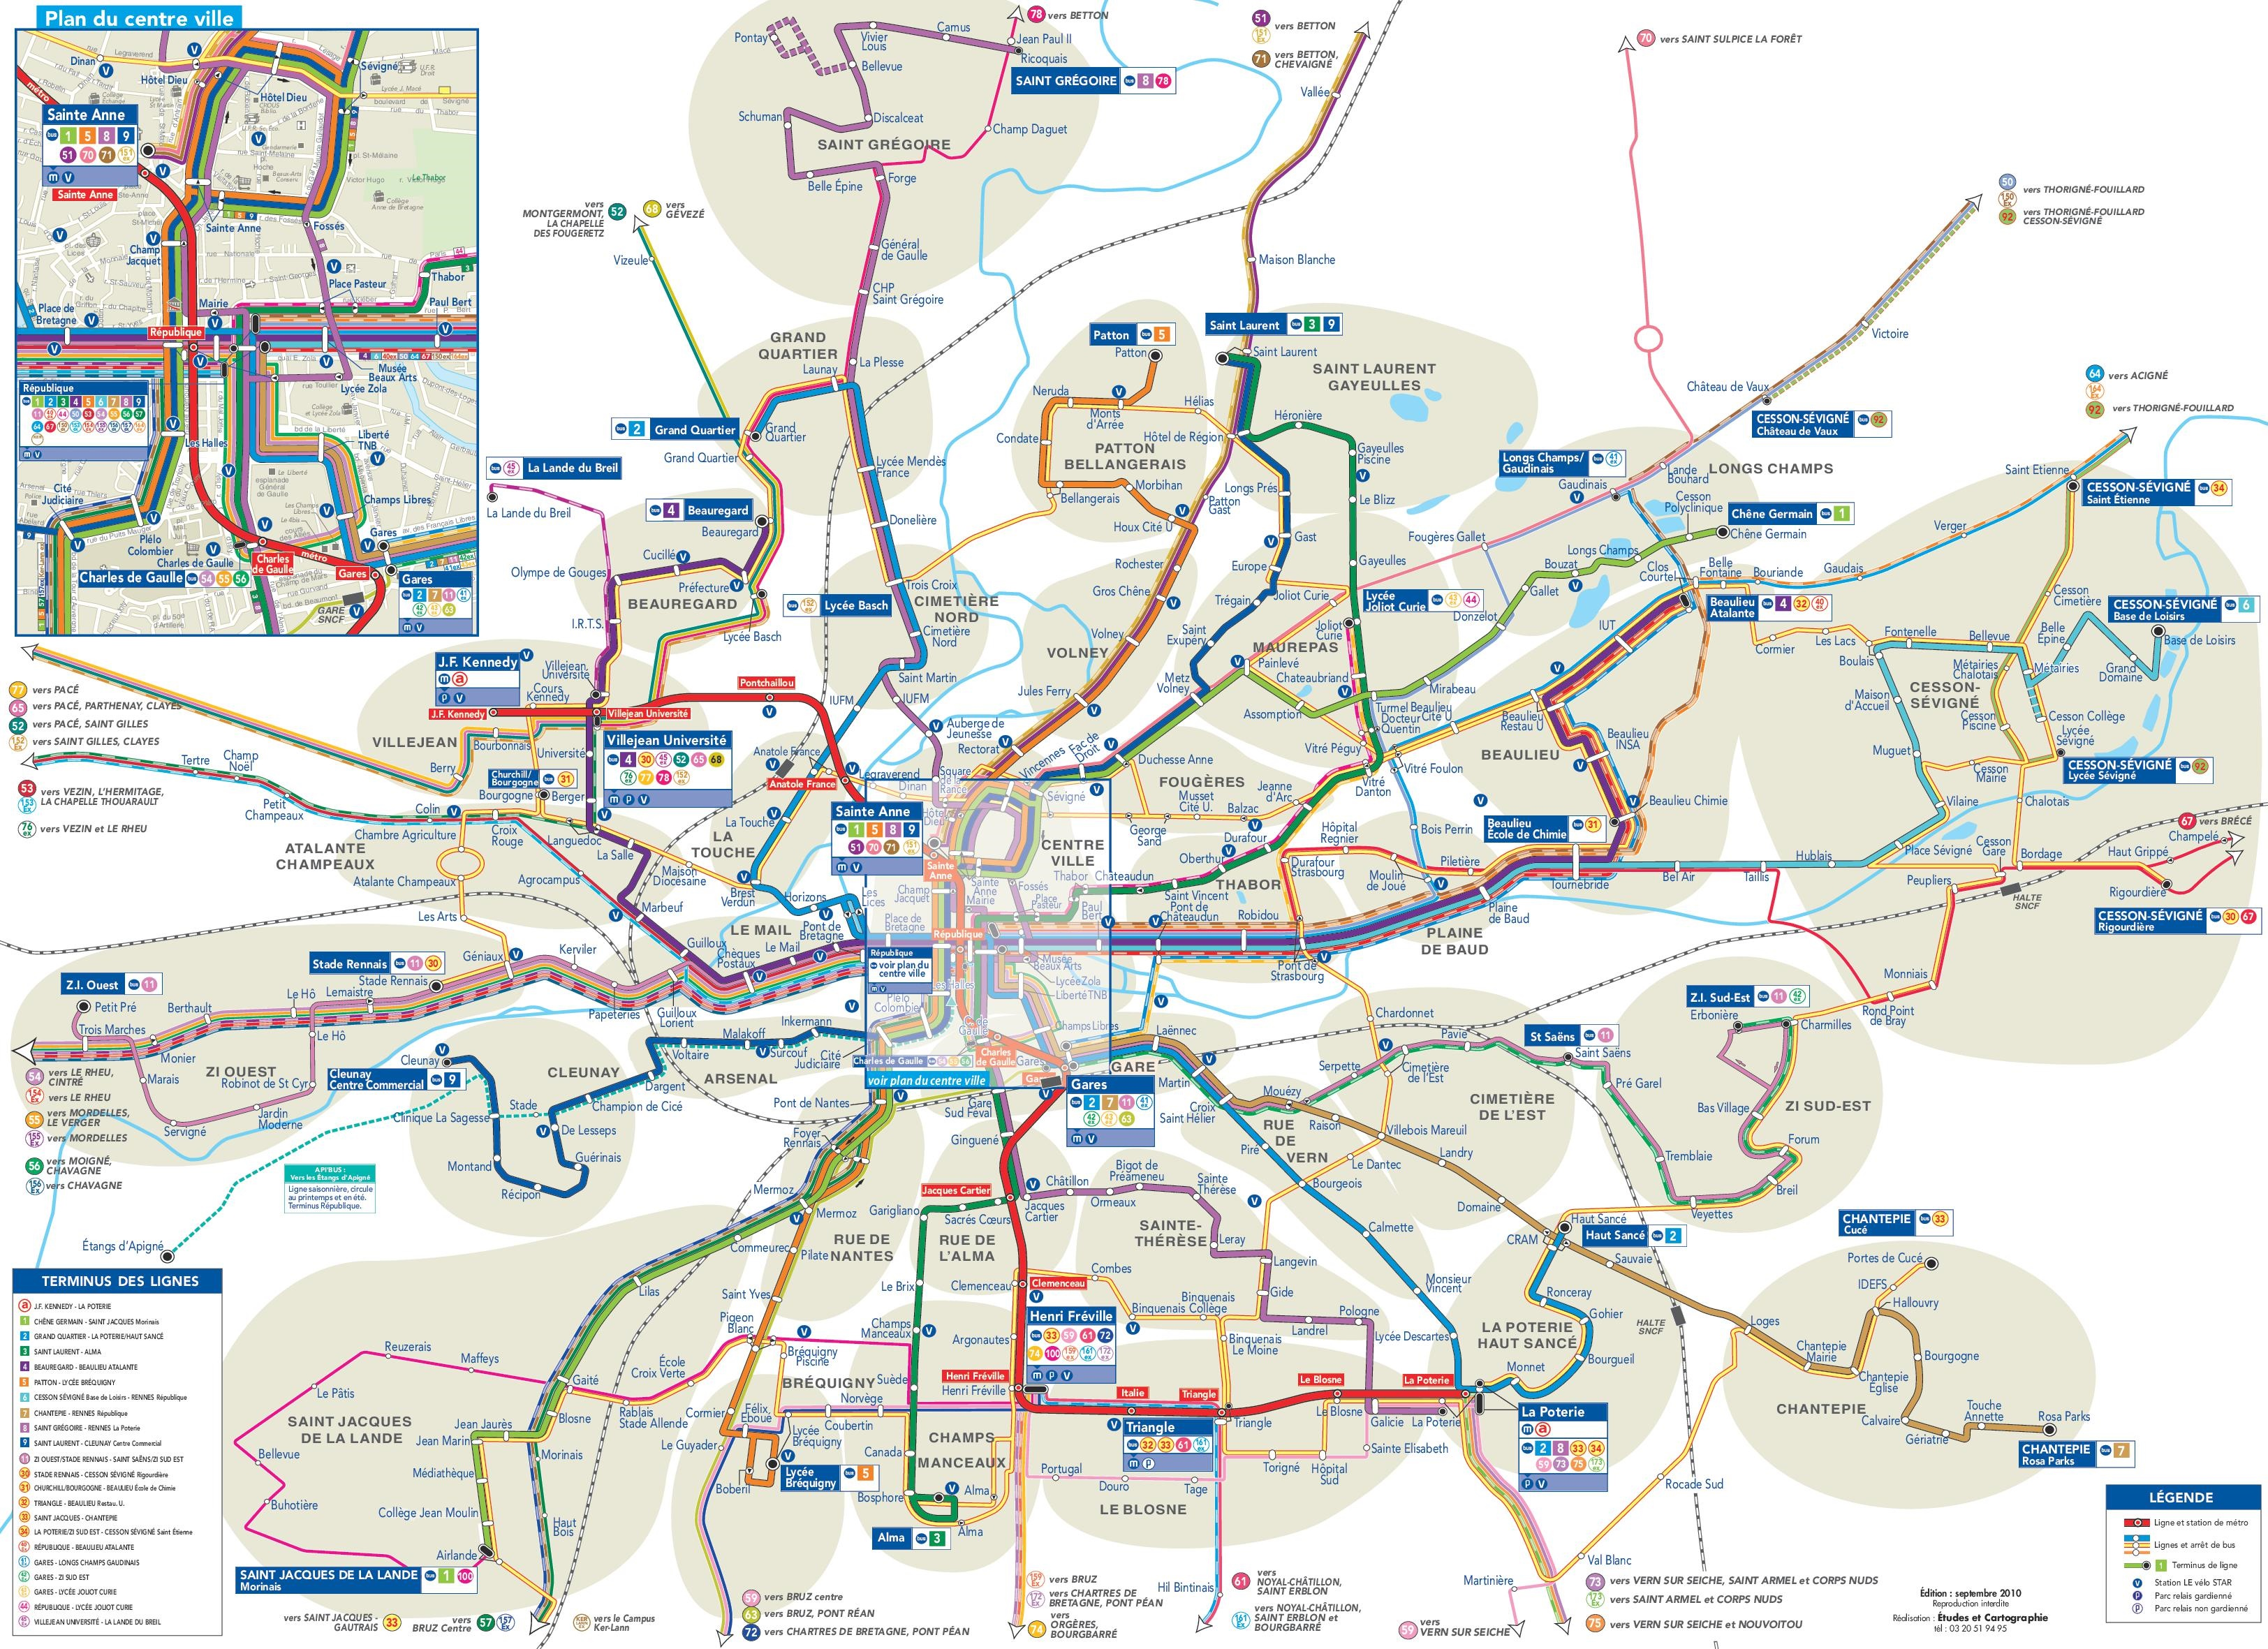 Bus Poitiers Nantes Rennes Transport Map